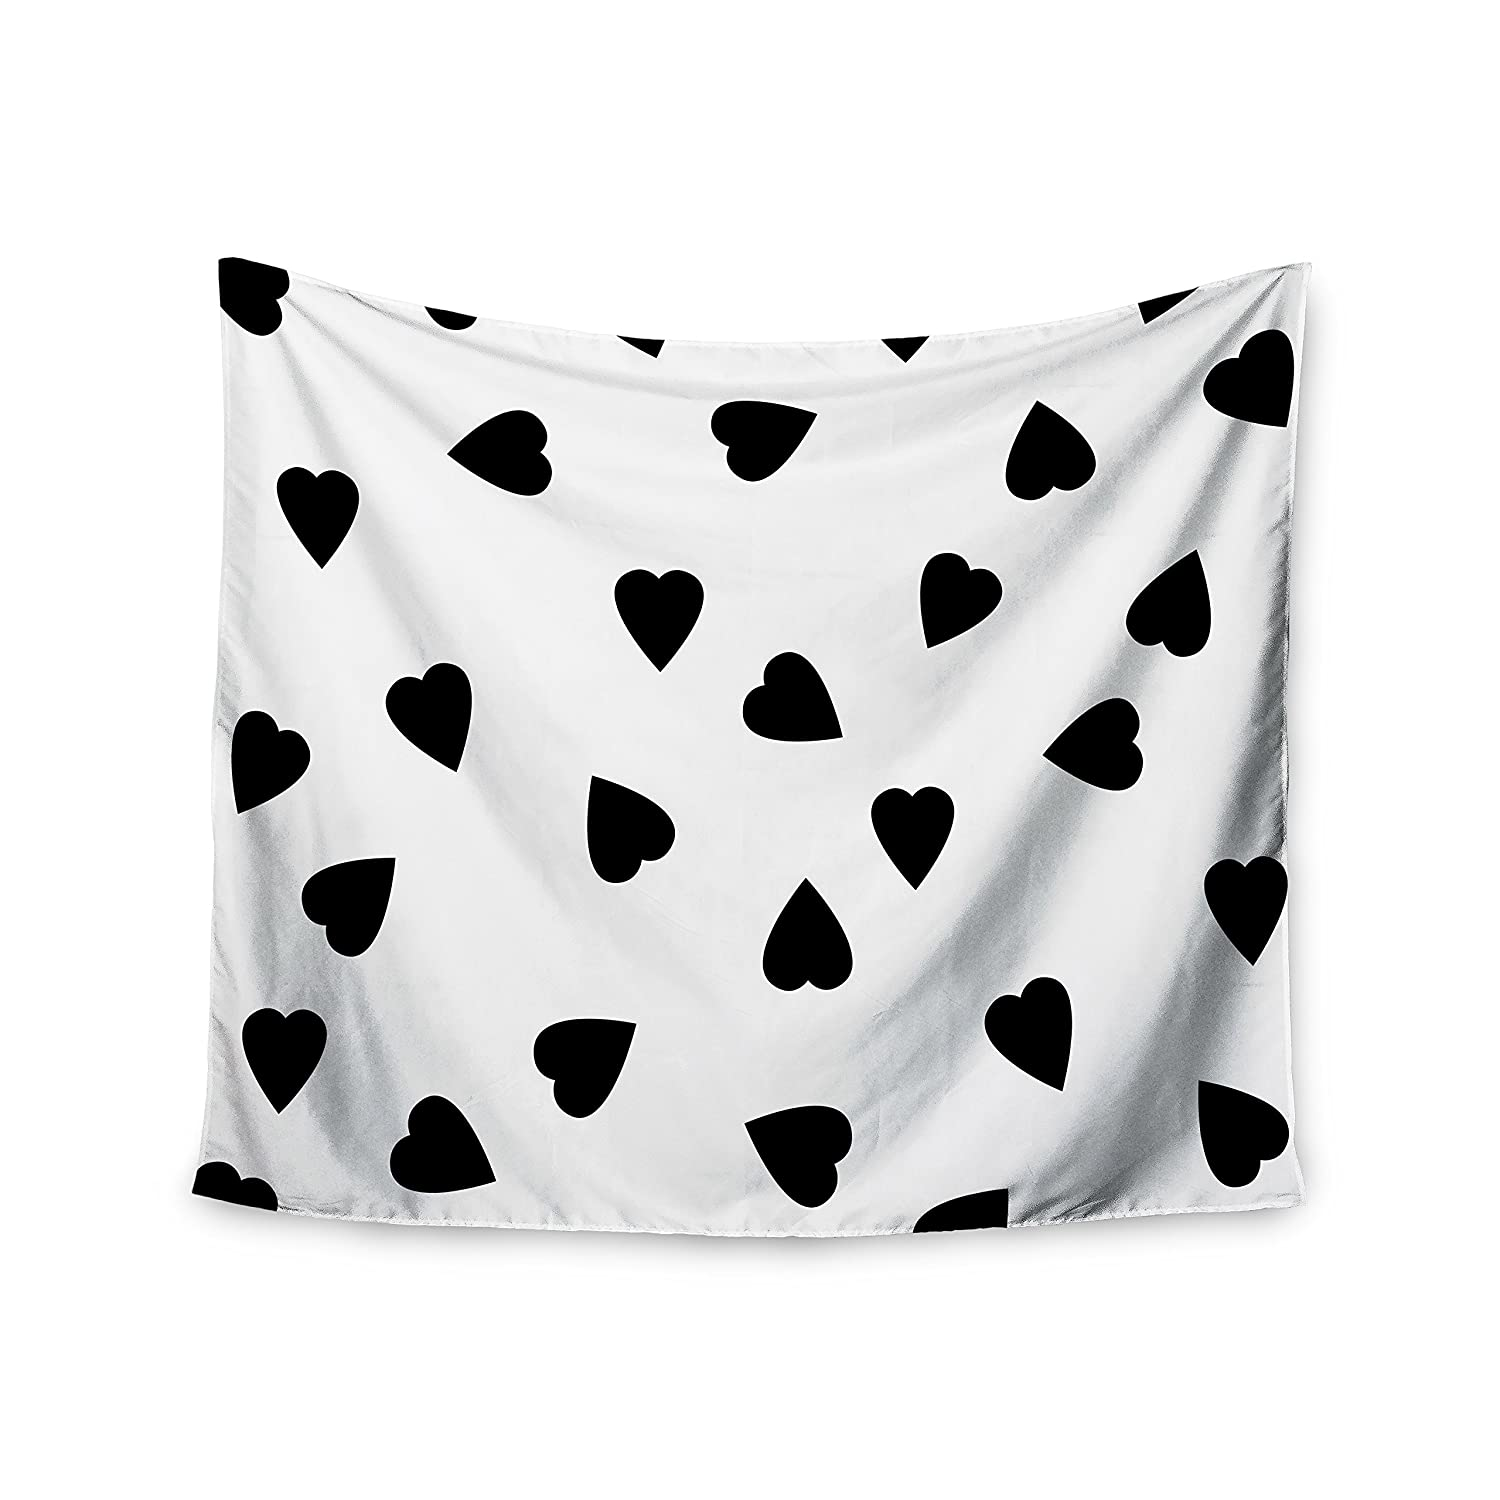 68 X 80 Kess InHouse Suzanne Carter Hearts Black White Wall Tapestry